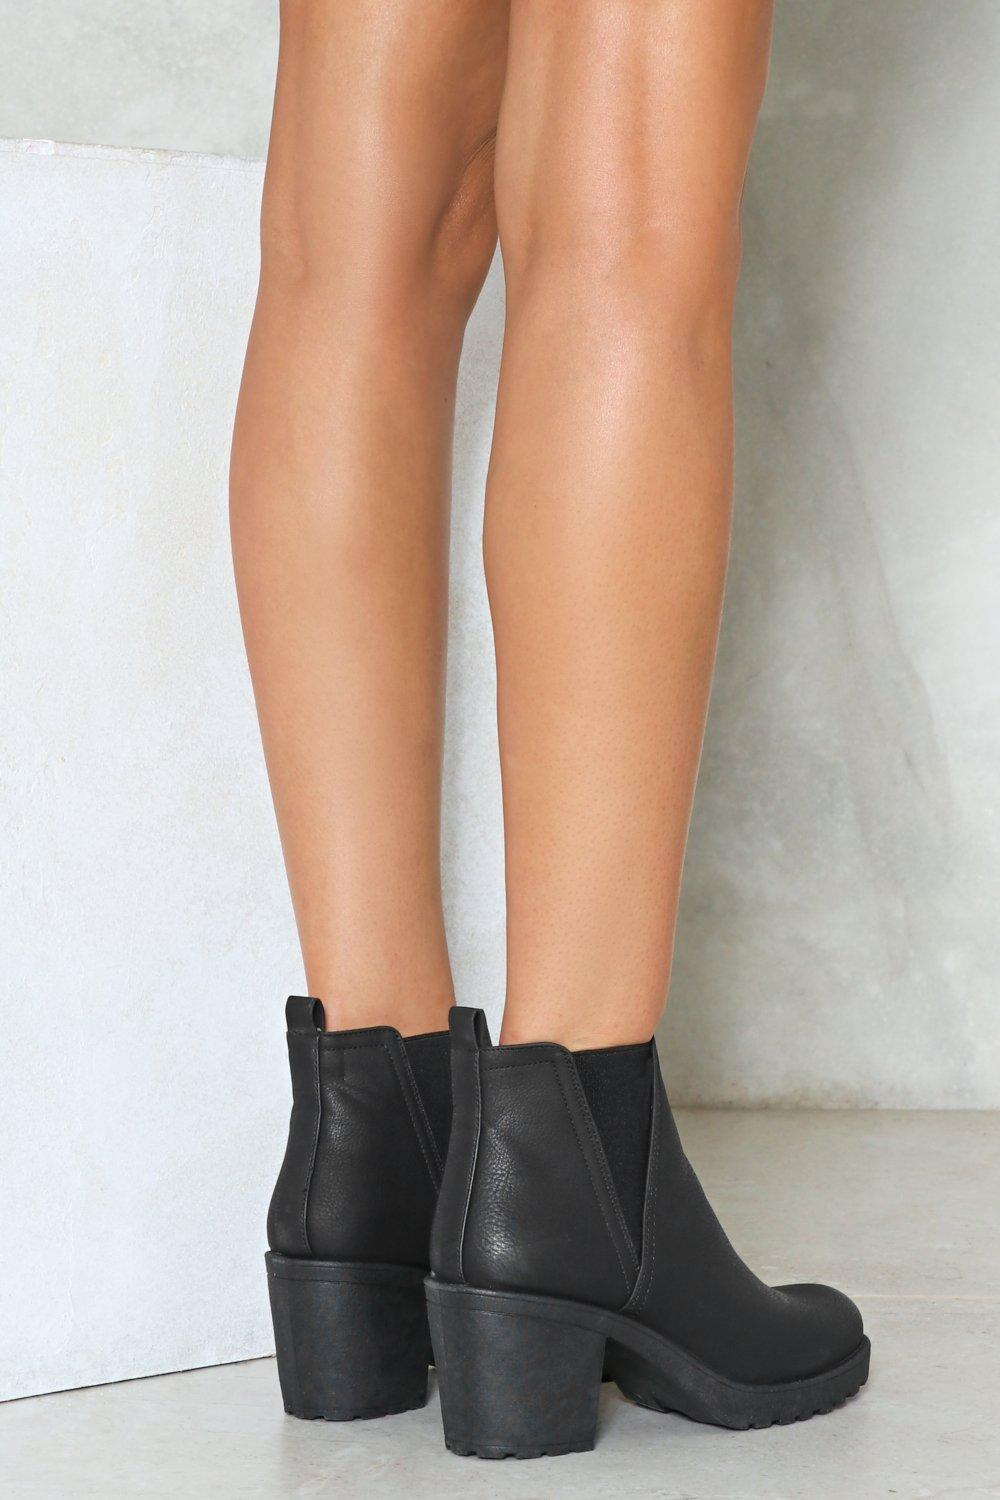 A Little Less Conversation Faux Leather Boot cheap sale good selling discount official site UK2cG2t2